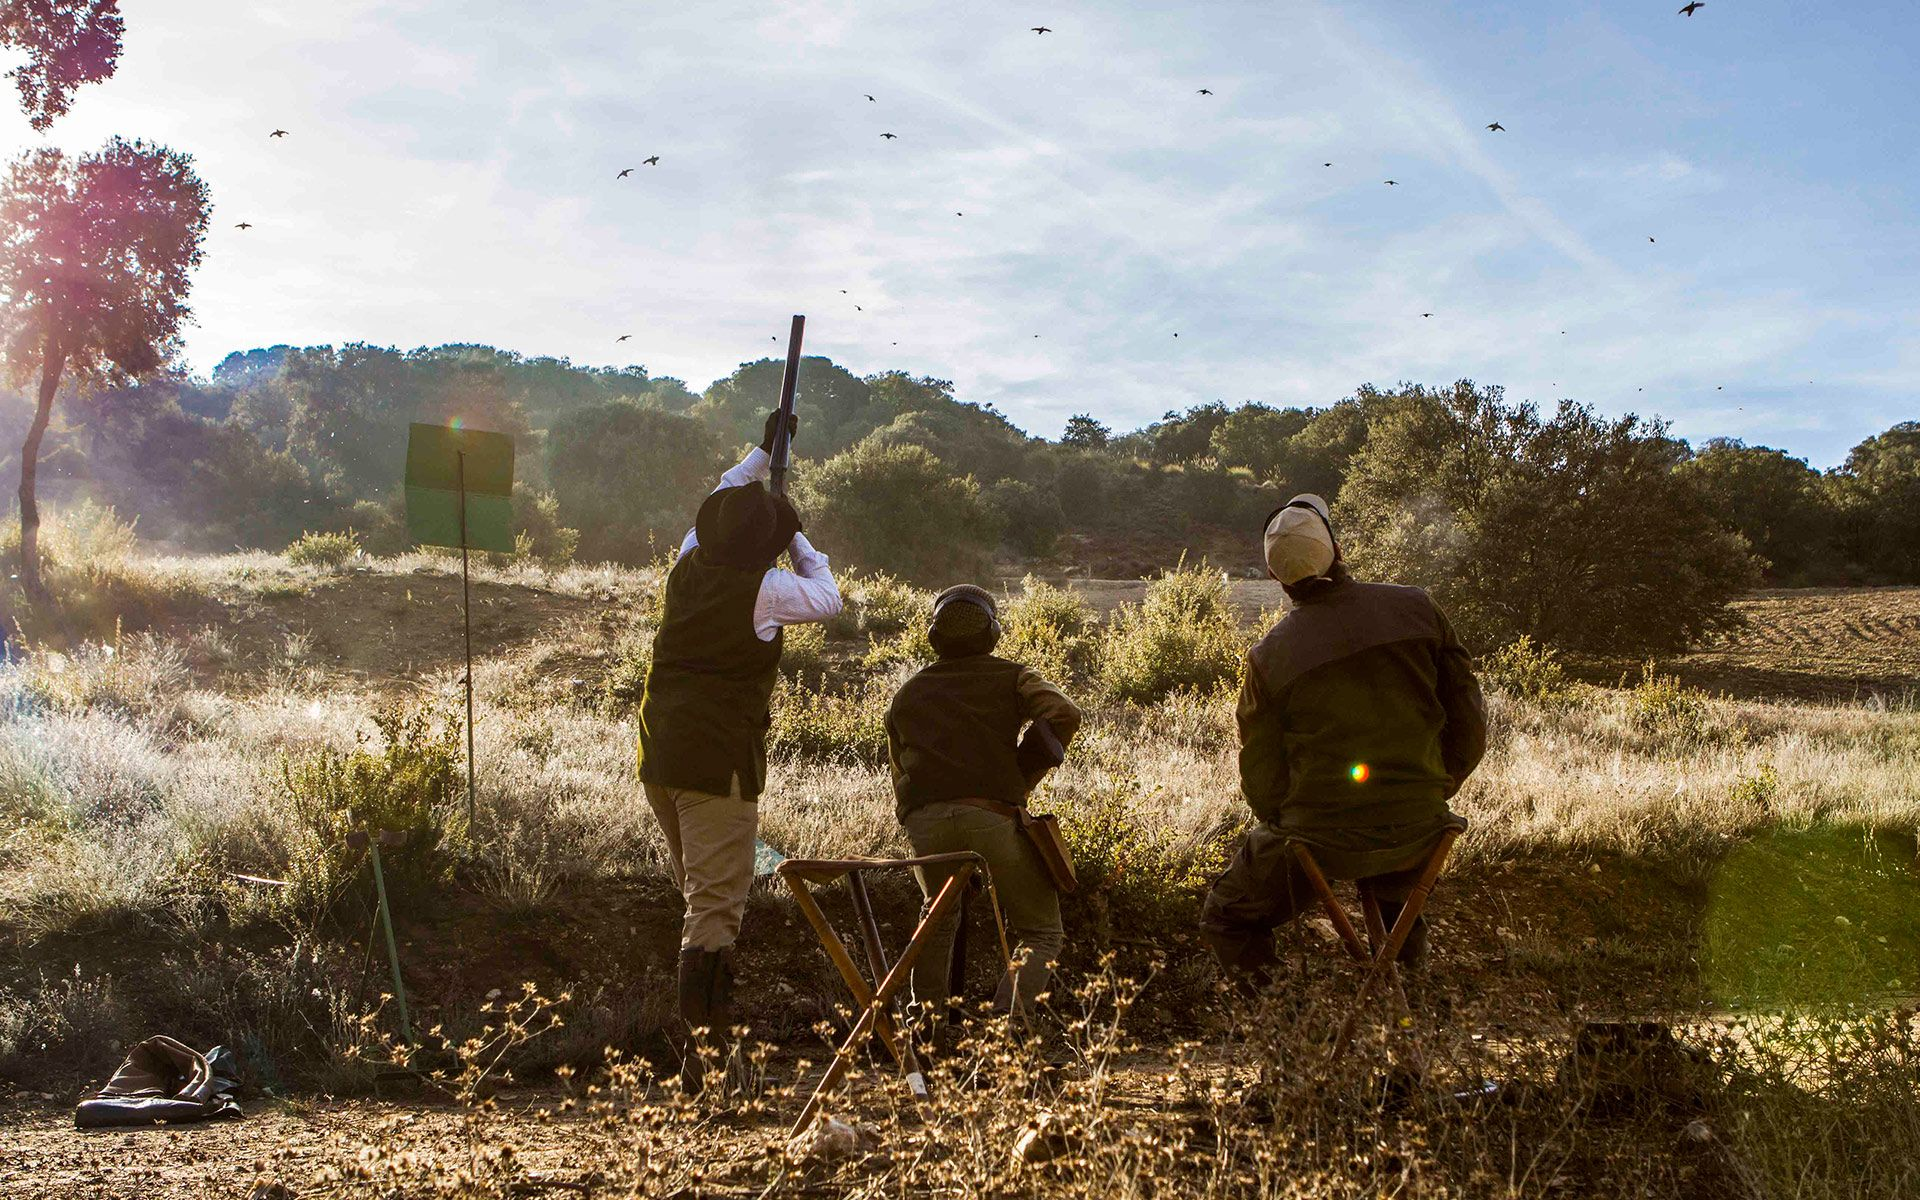 40 years organizing partridge shoots in Spain